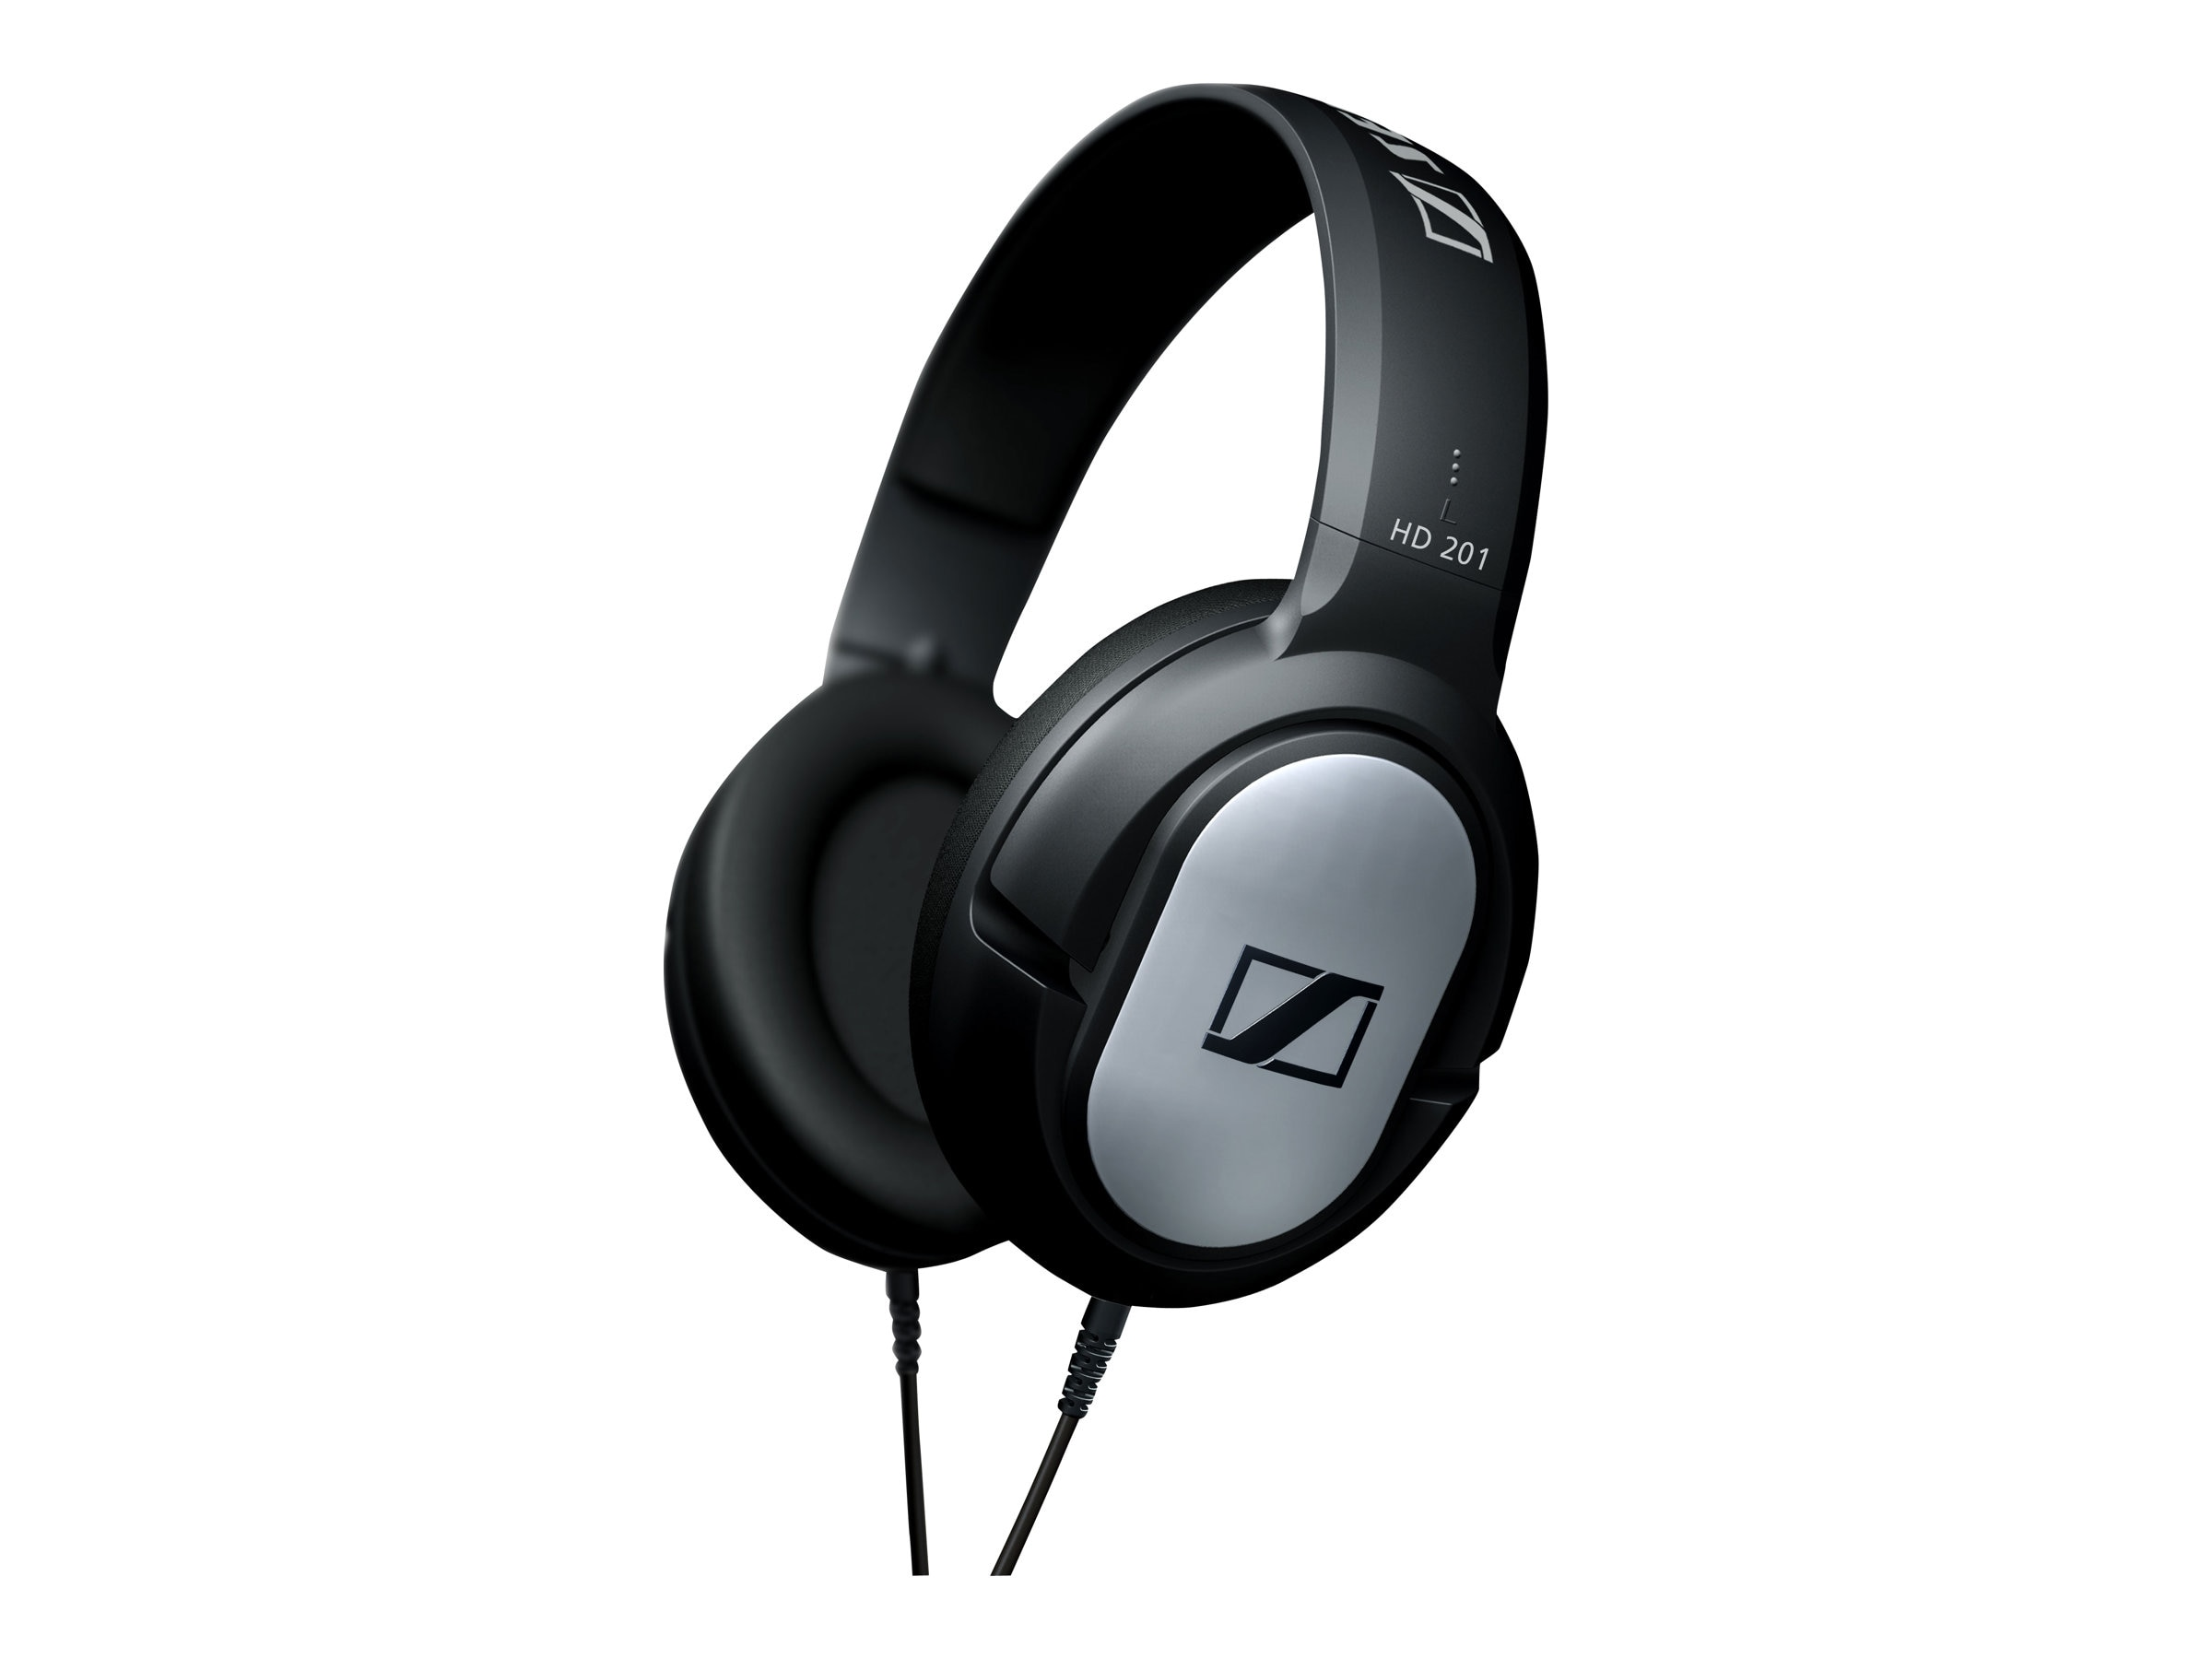 Sennheiser HD 201 Over Ear Headphones, 500155